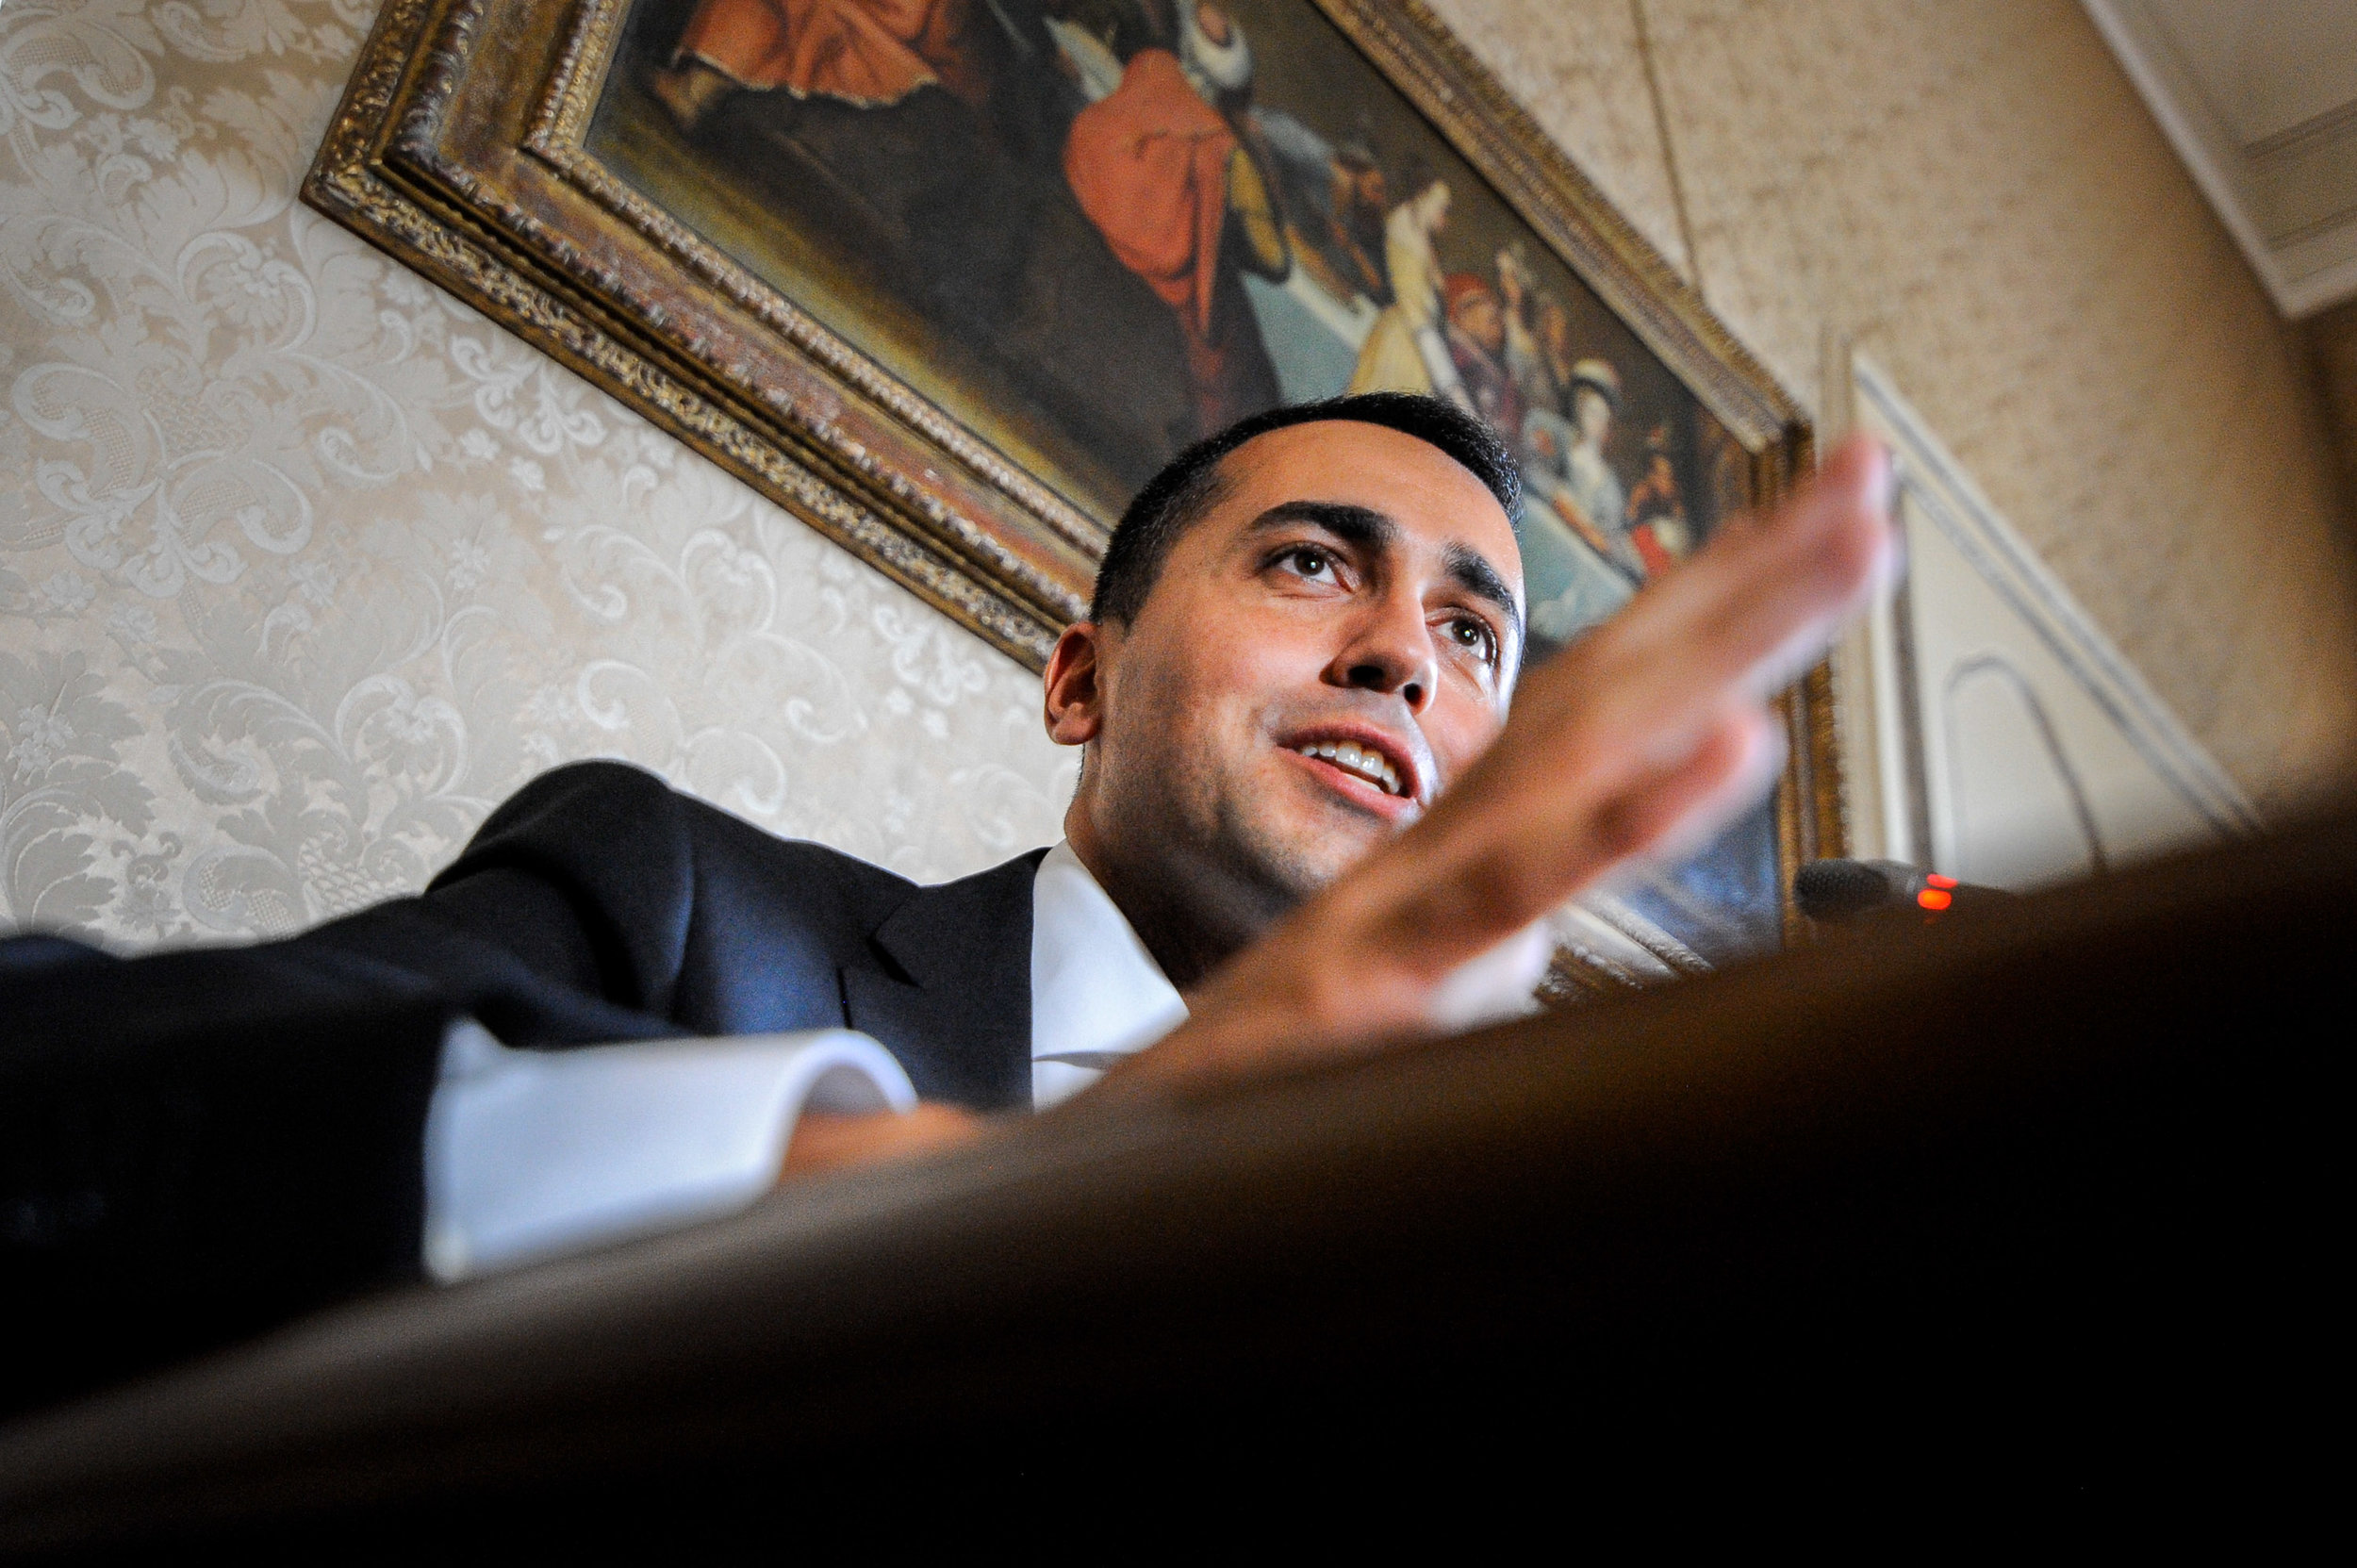 Luigi Di Maio of 5-Star Movement gestures as he speaks during a news conference in Palermo, Italy, October 2, 2017.